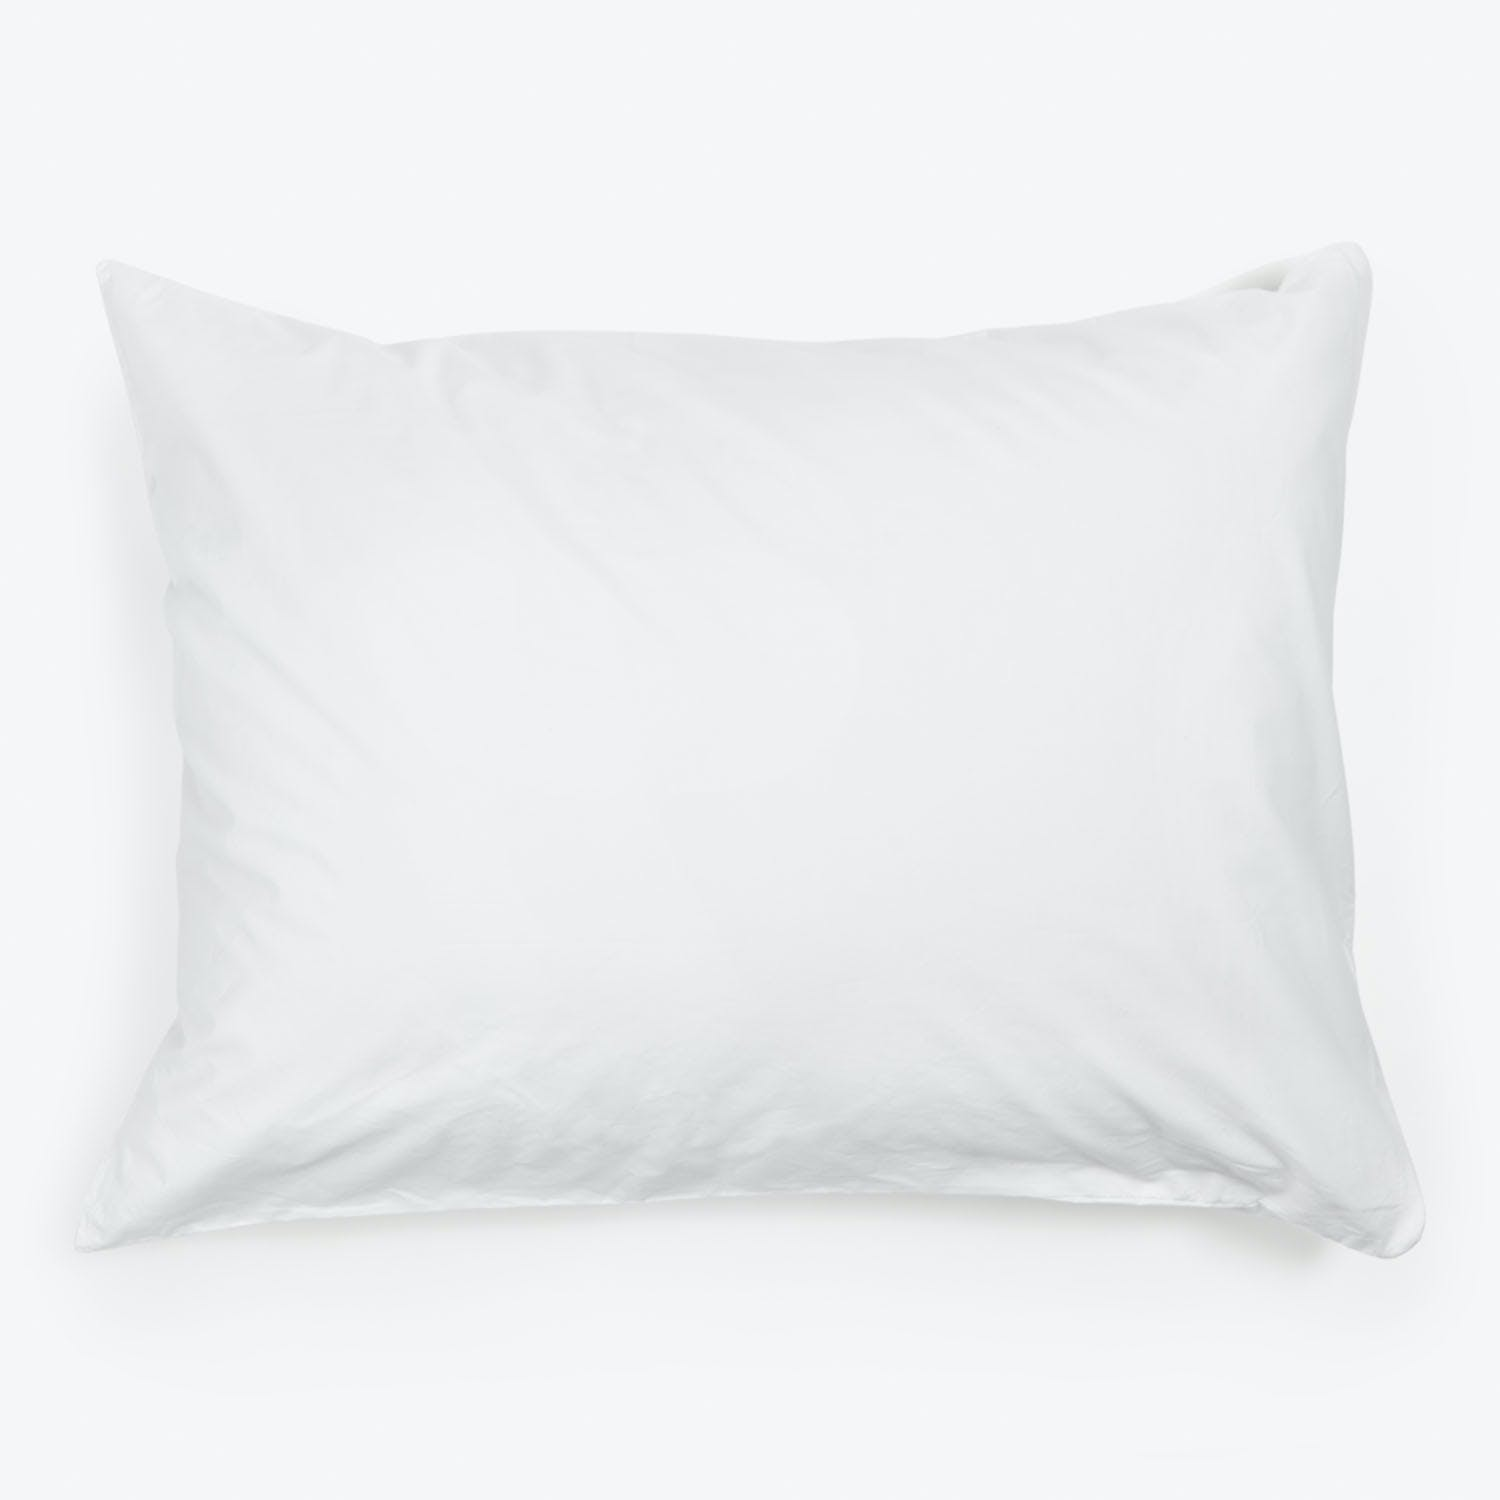 Product Image - Organic Cotton Pillow Protector